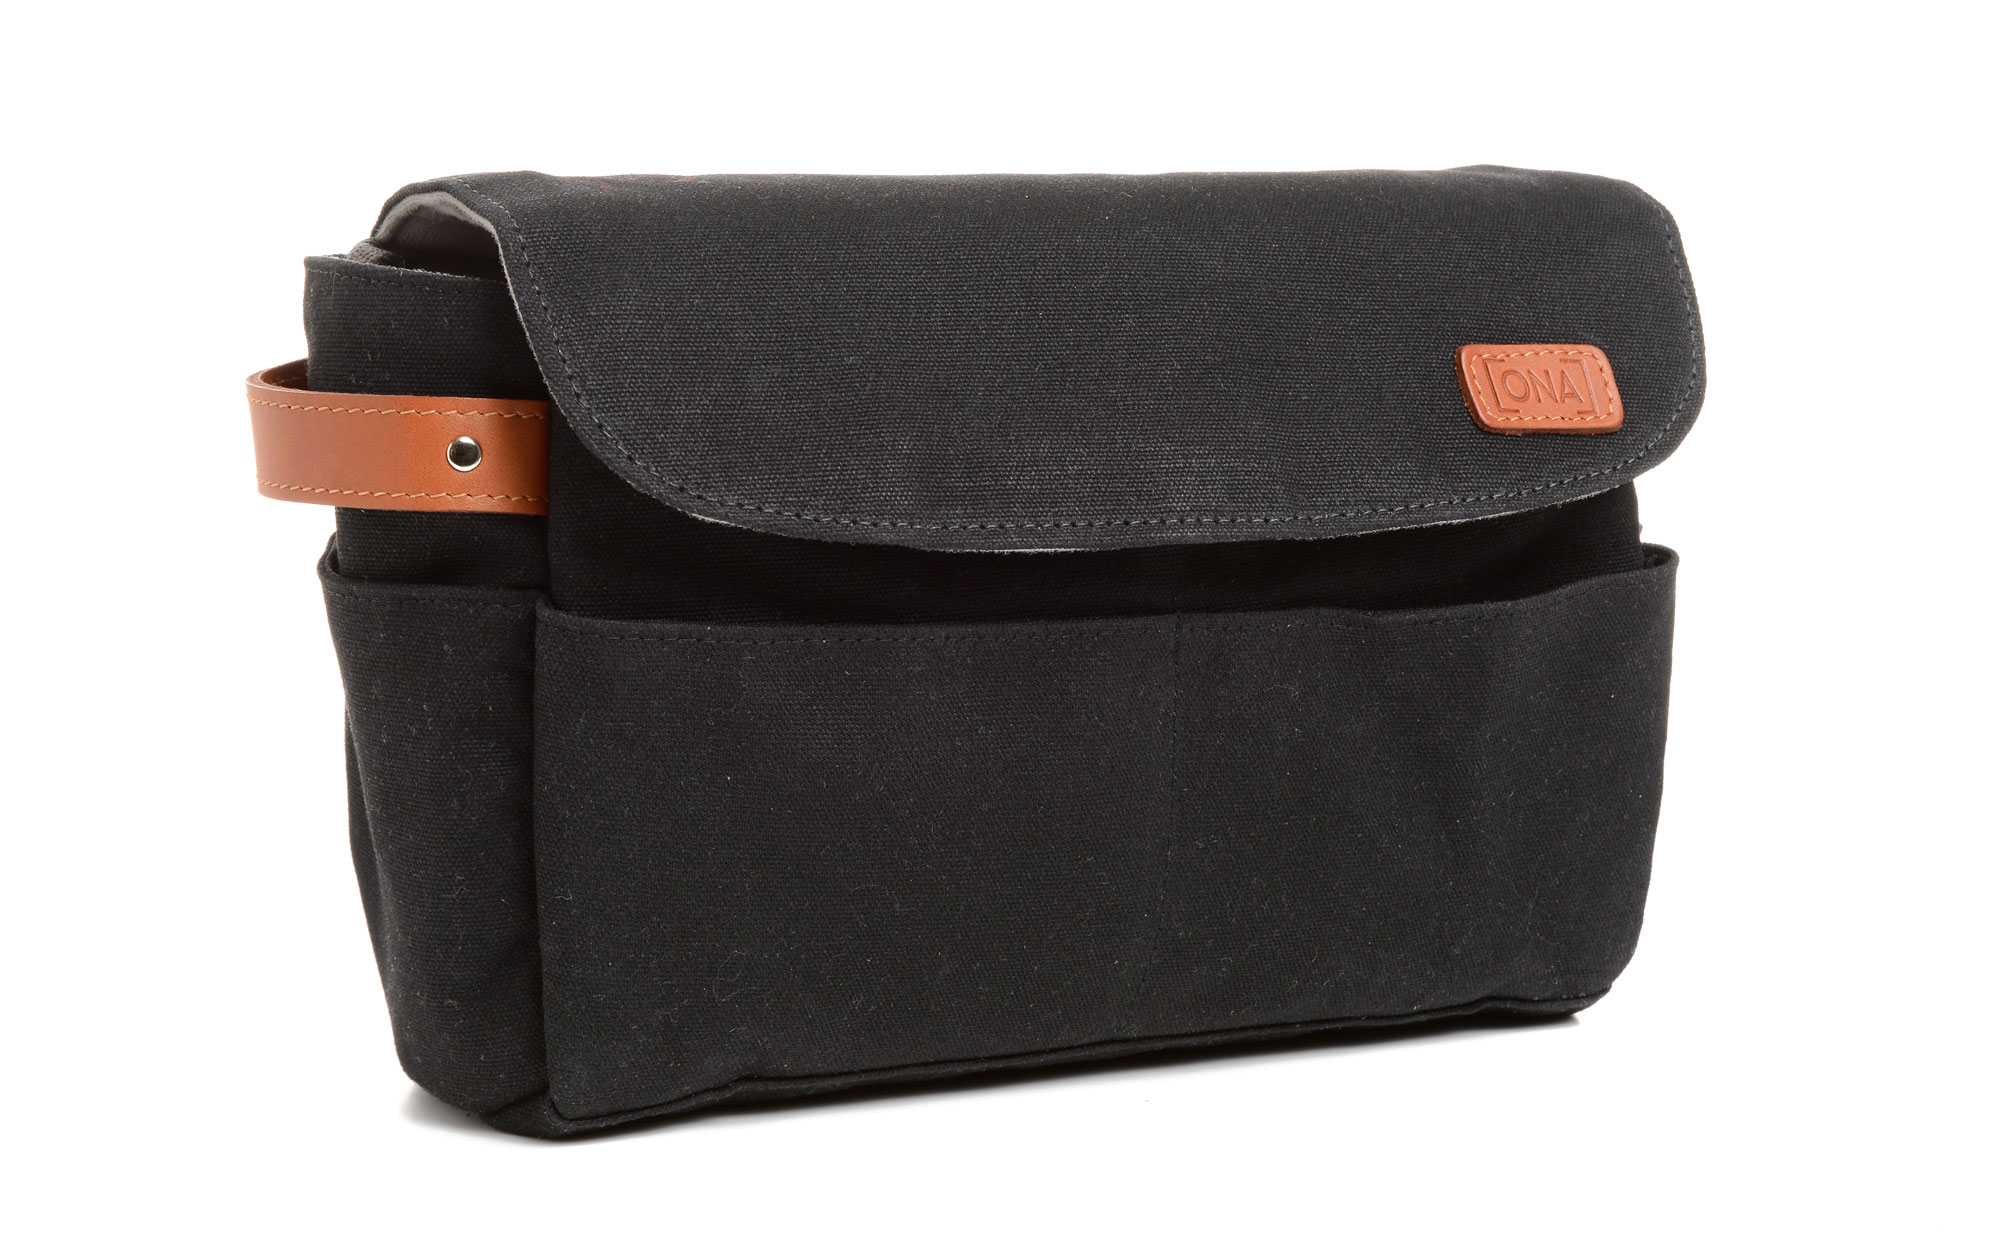 Camera Bags - ONA Roma Bag Insert